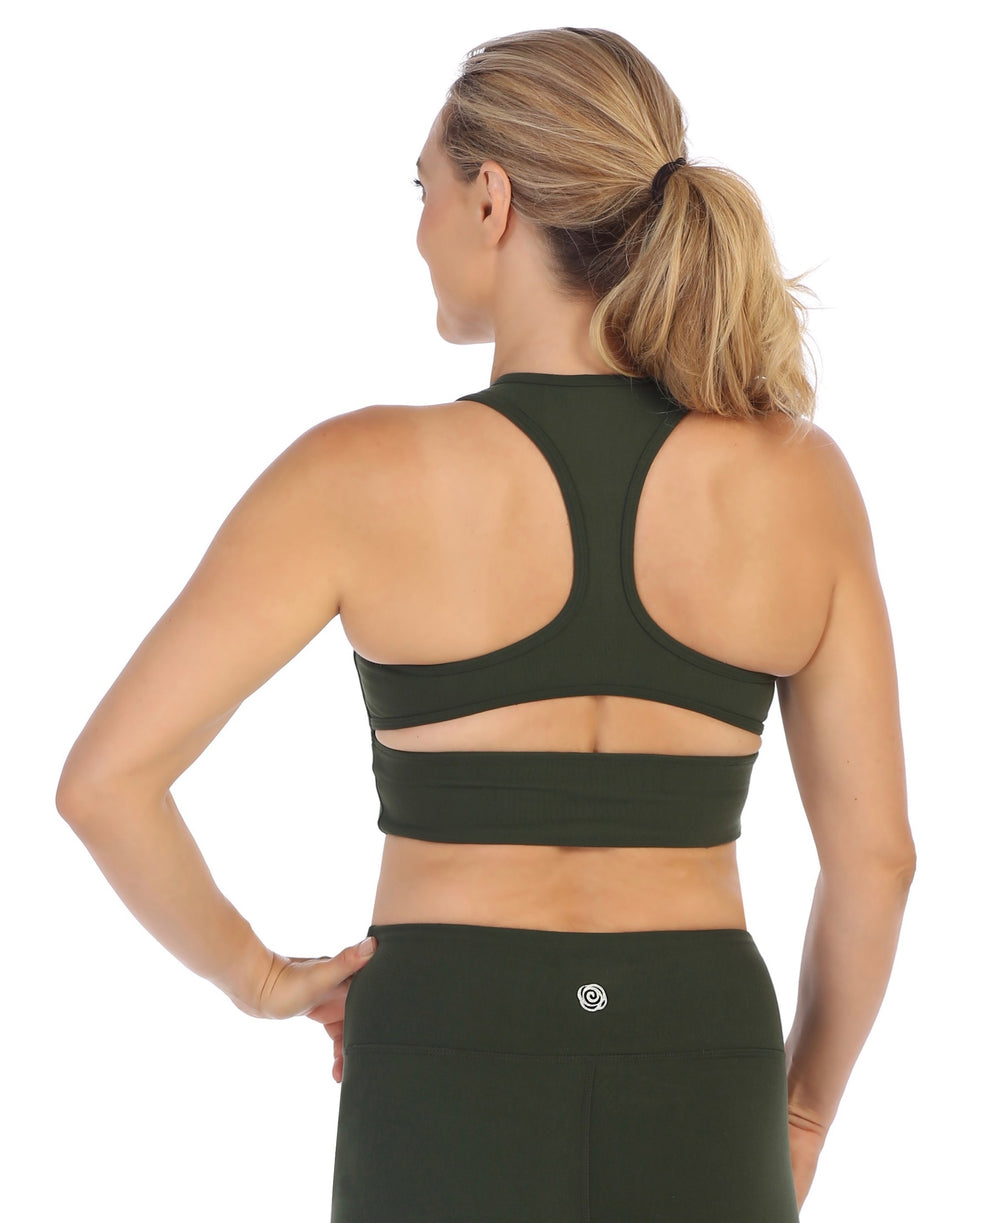 Olive-Racerback Crop Top Sports Bra-back